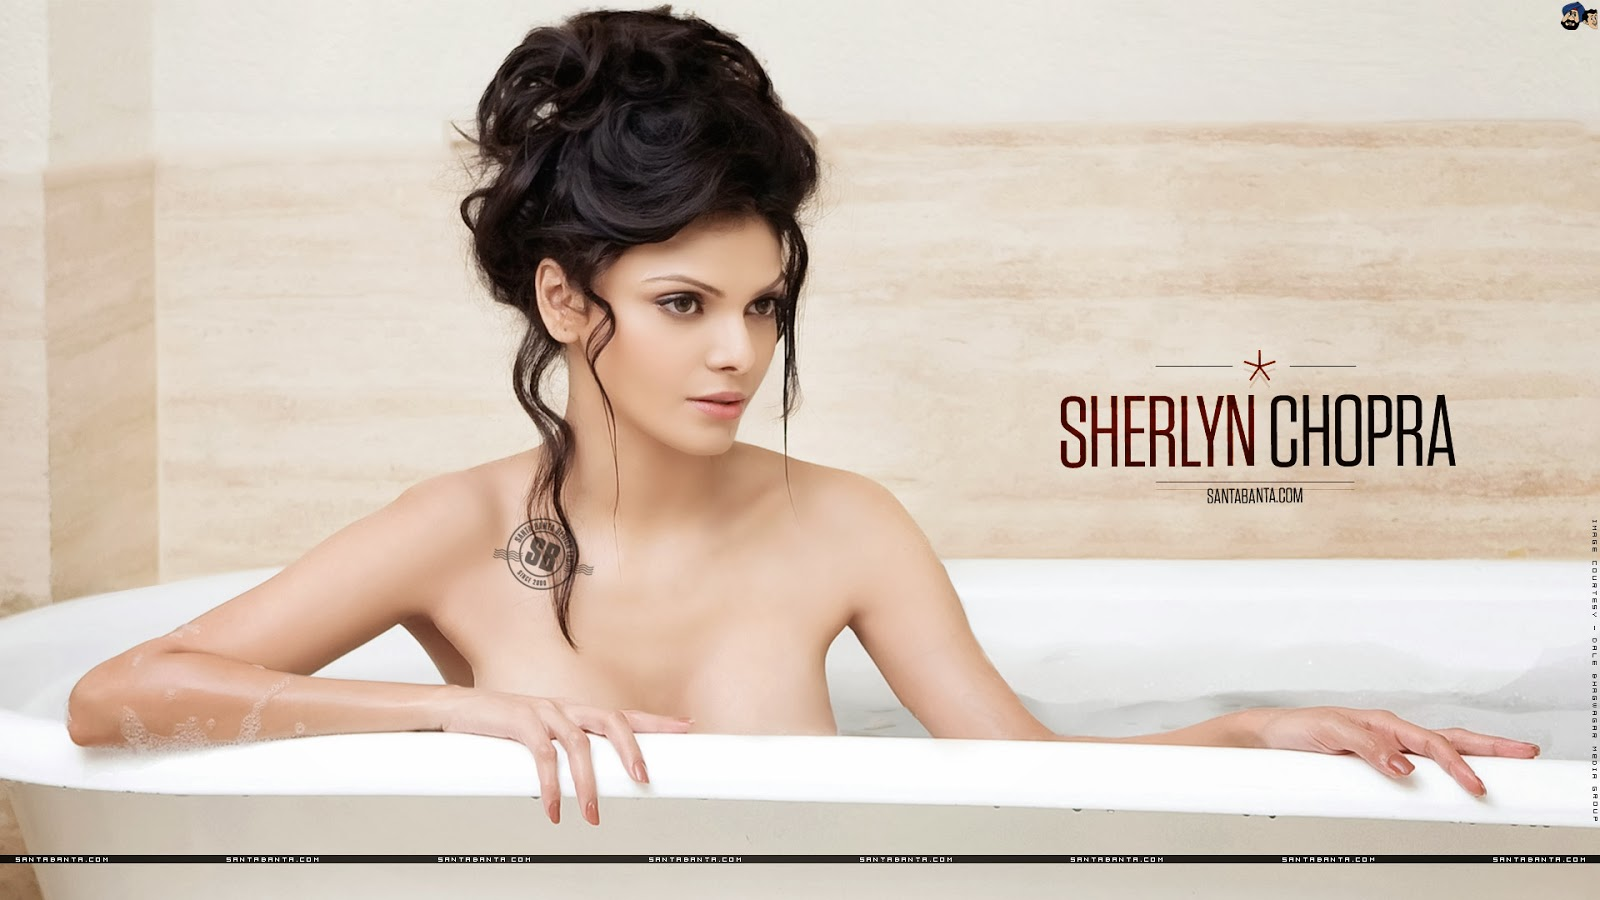 Sherlyn Chopra Nude Pics From Playboy